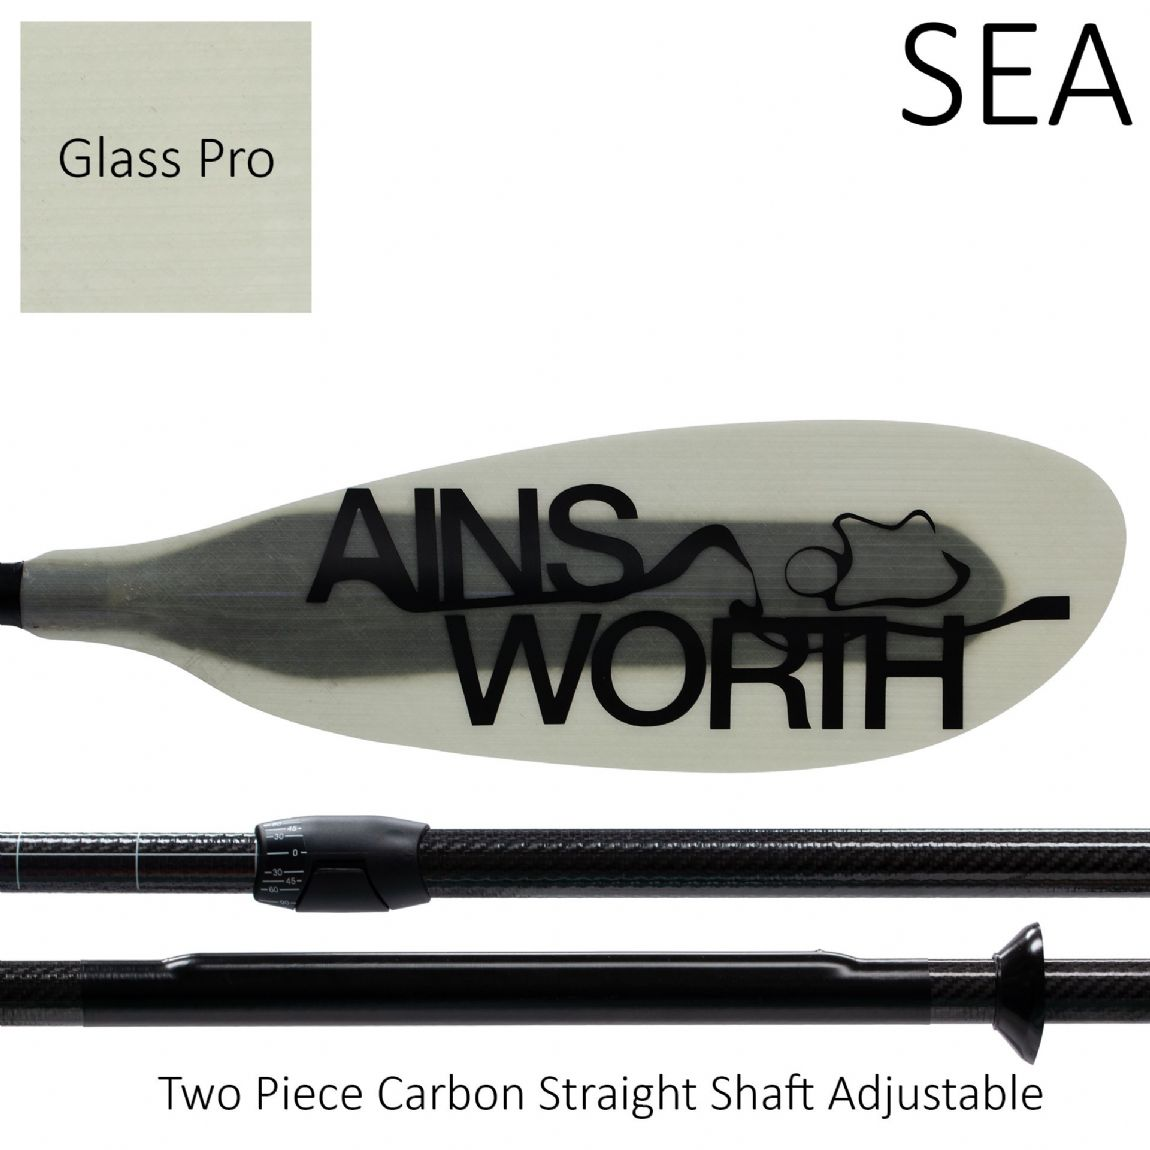 SEA (Glass Pro) Two Piece Carbon Straight Shaft Adjustable